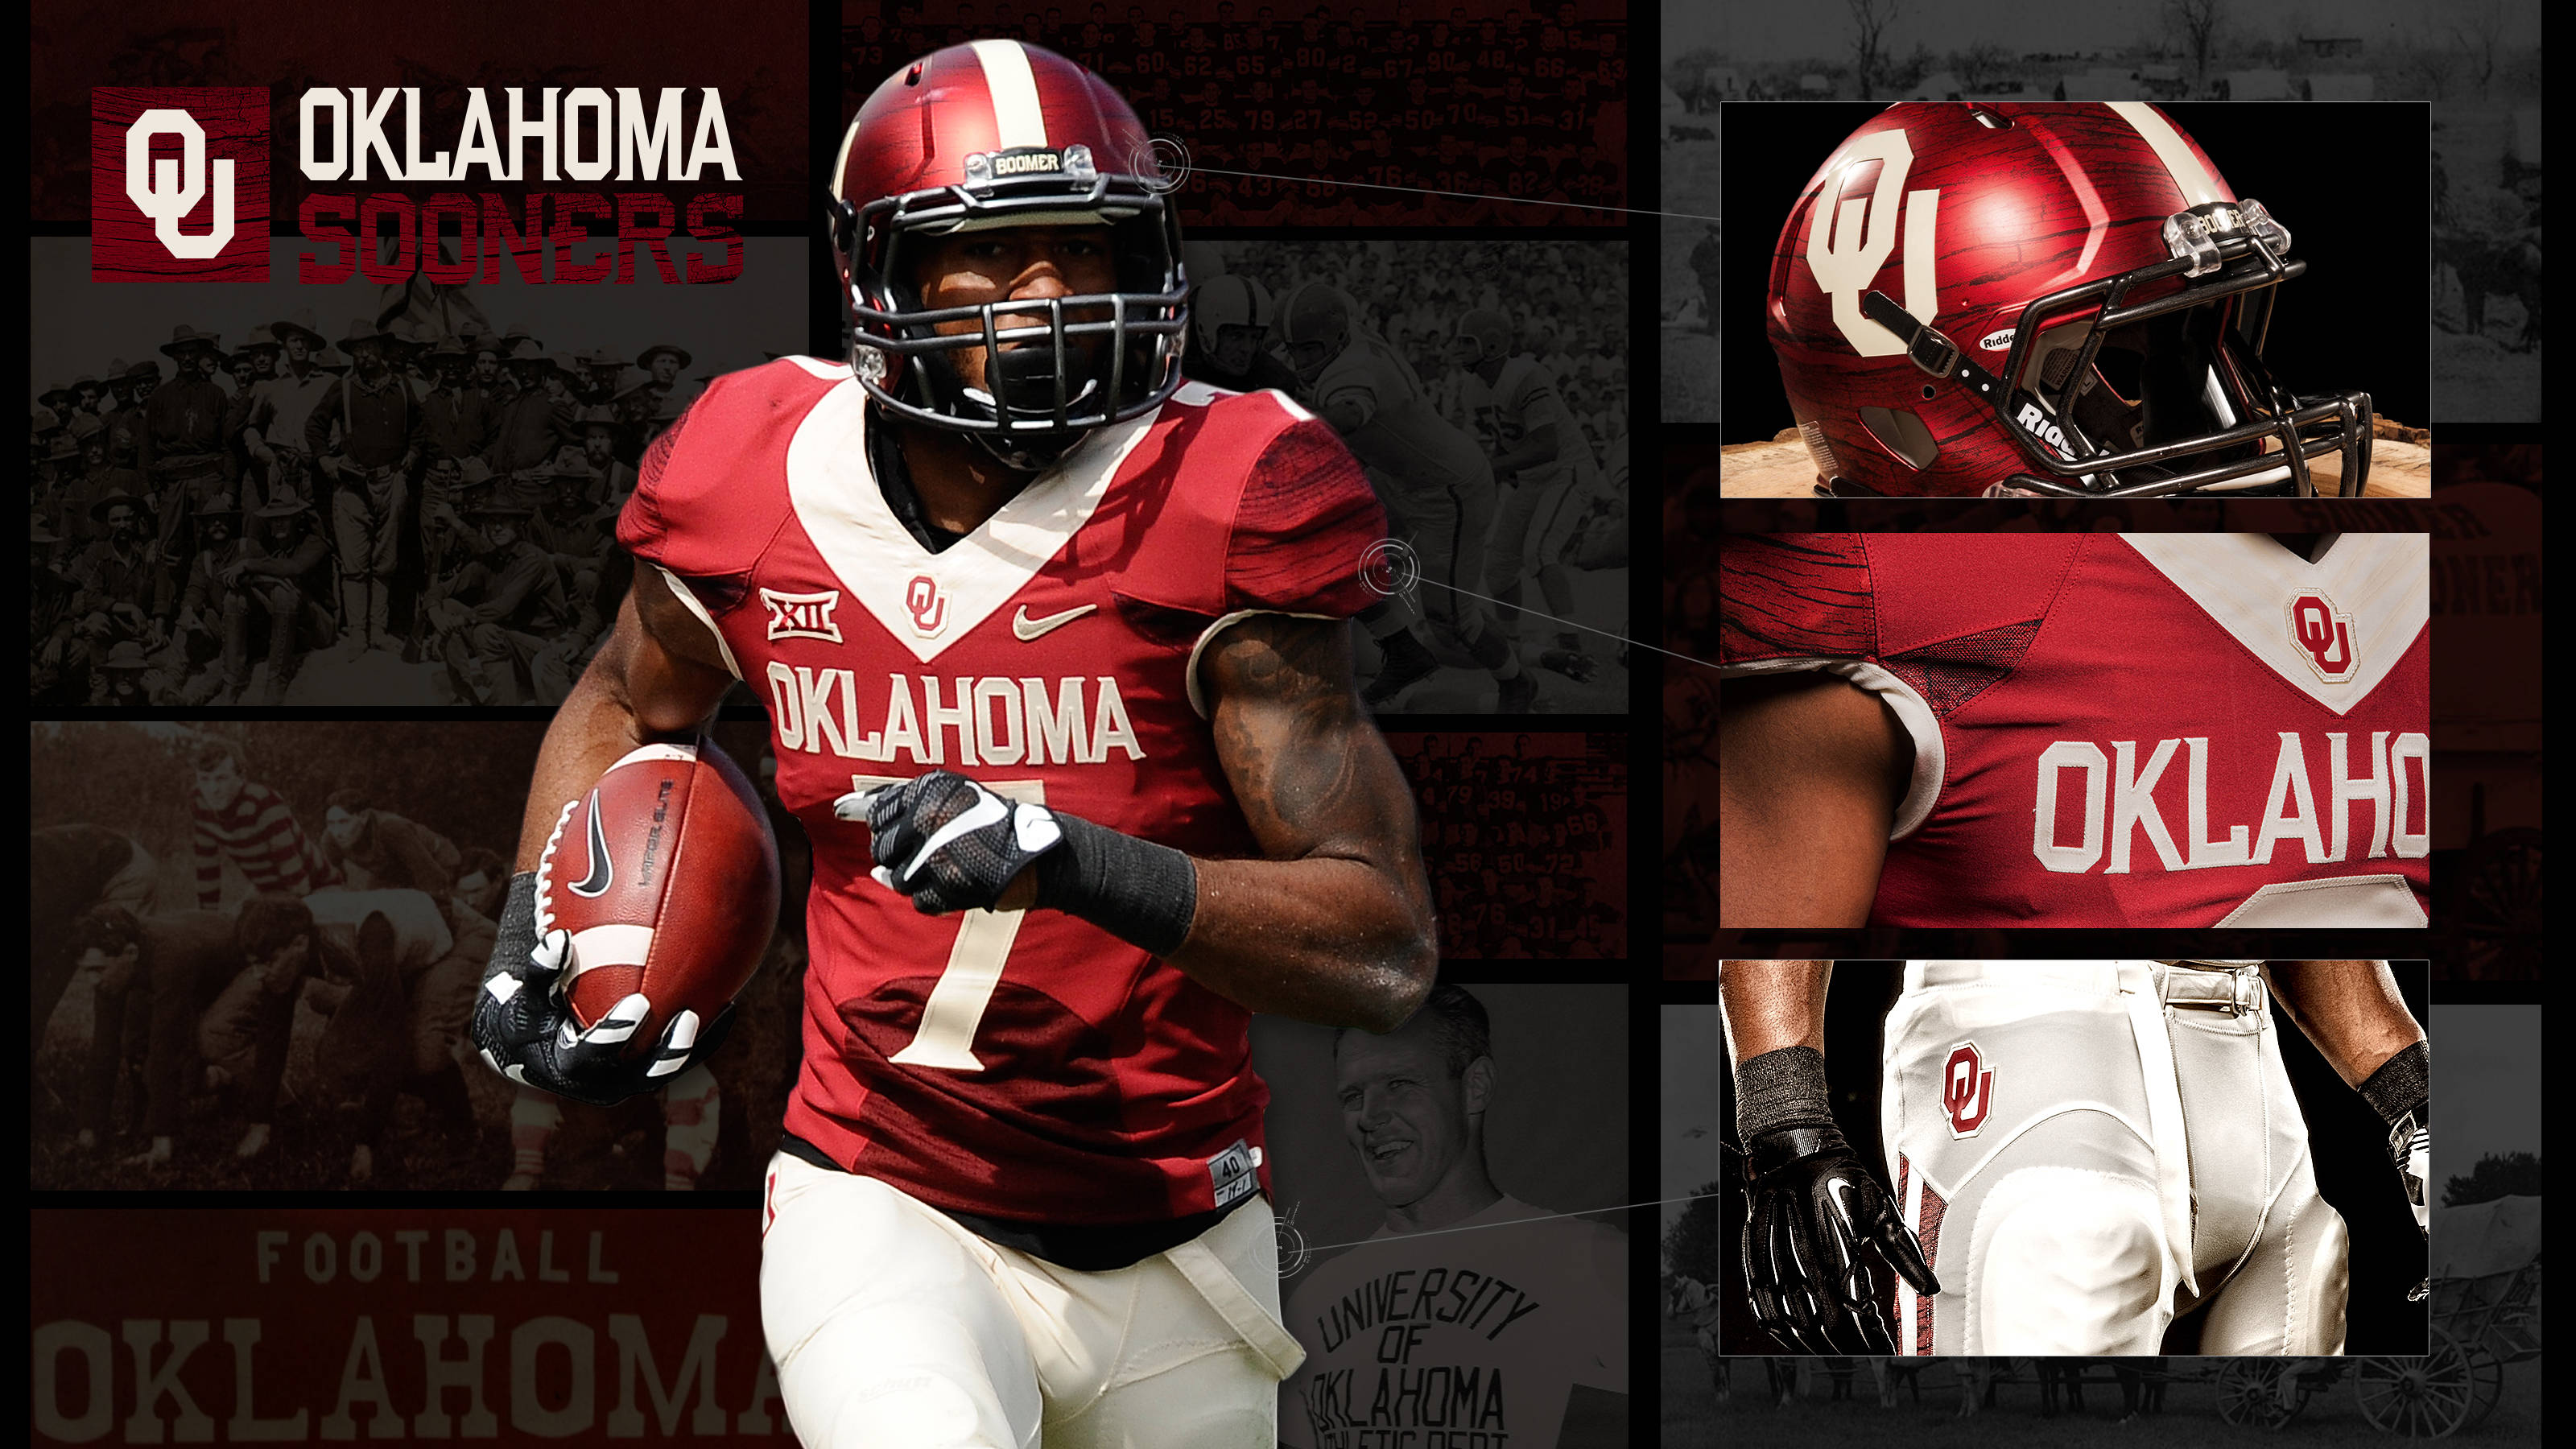 brand new 0b7f4 0f29c The Rough Riders Are Back Saturday - University of Oklahoma